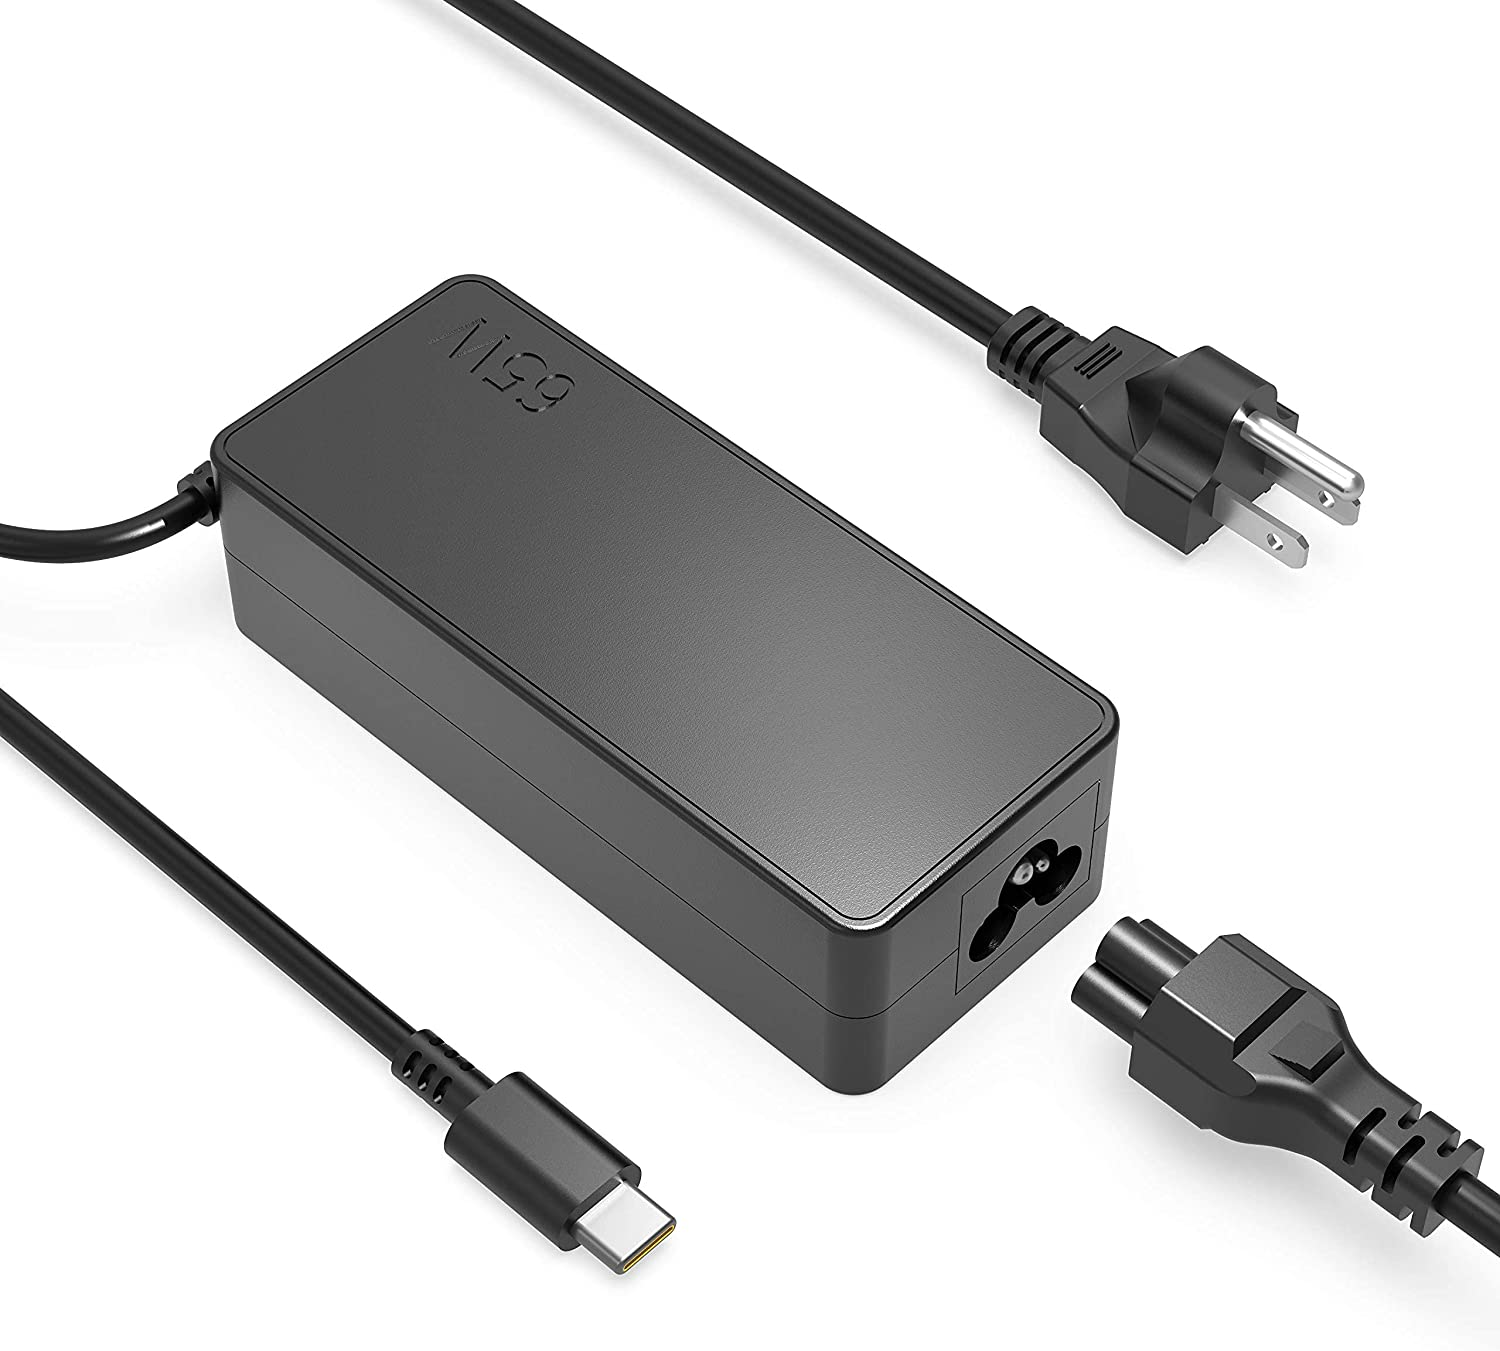 65W USB Type C Laptop Charger Fit for Dell Latitude 7420 7520 7320 3120 2in1 AC Power Adapter Supply Cord